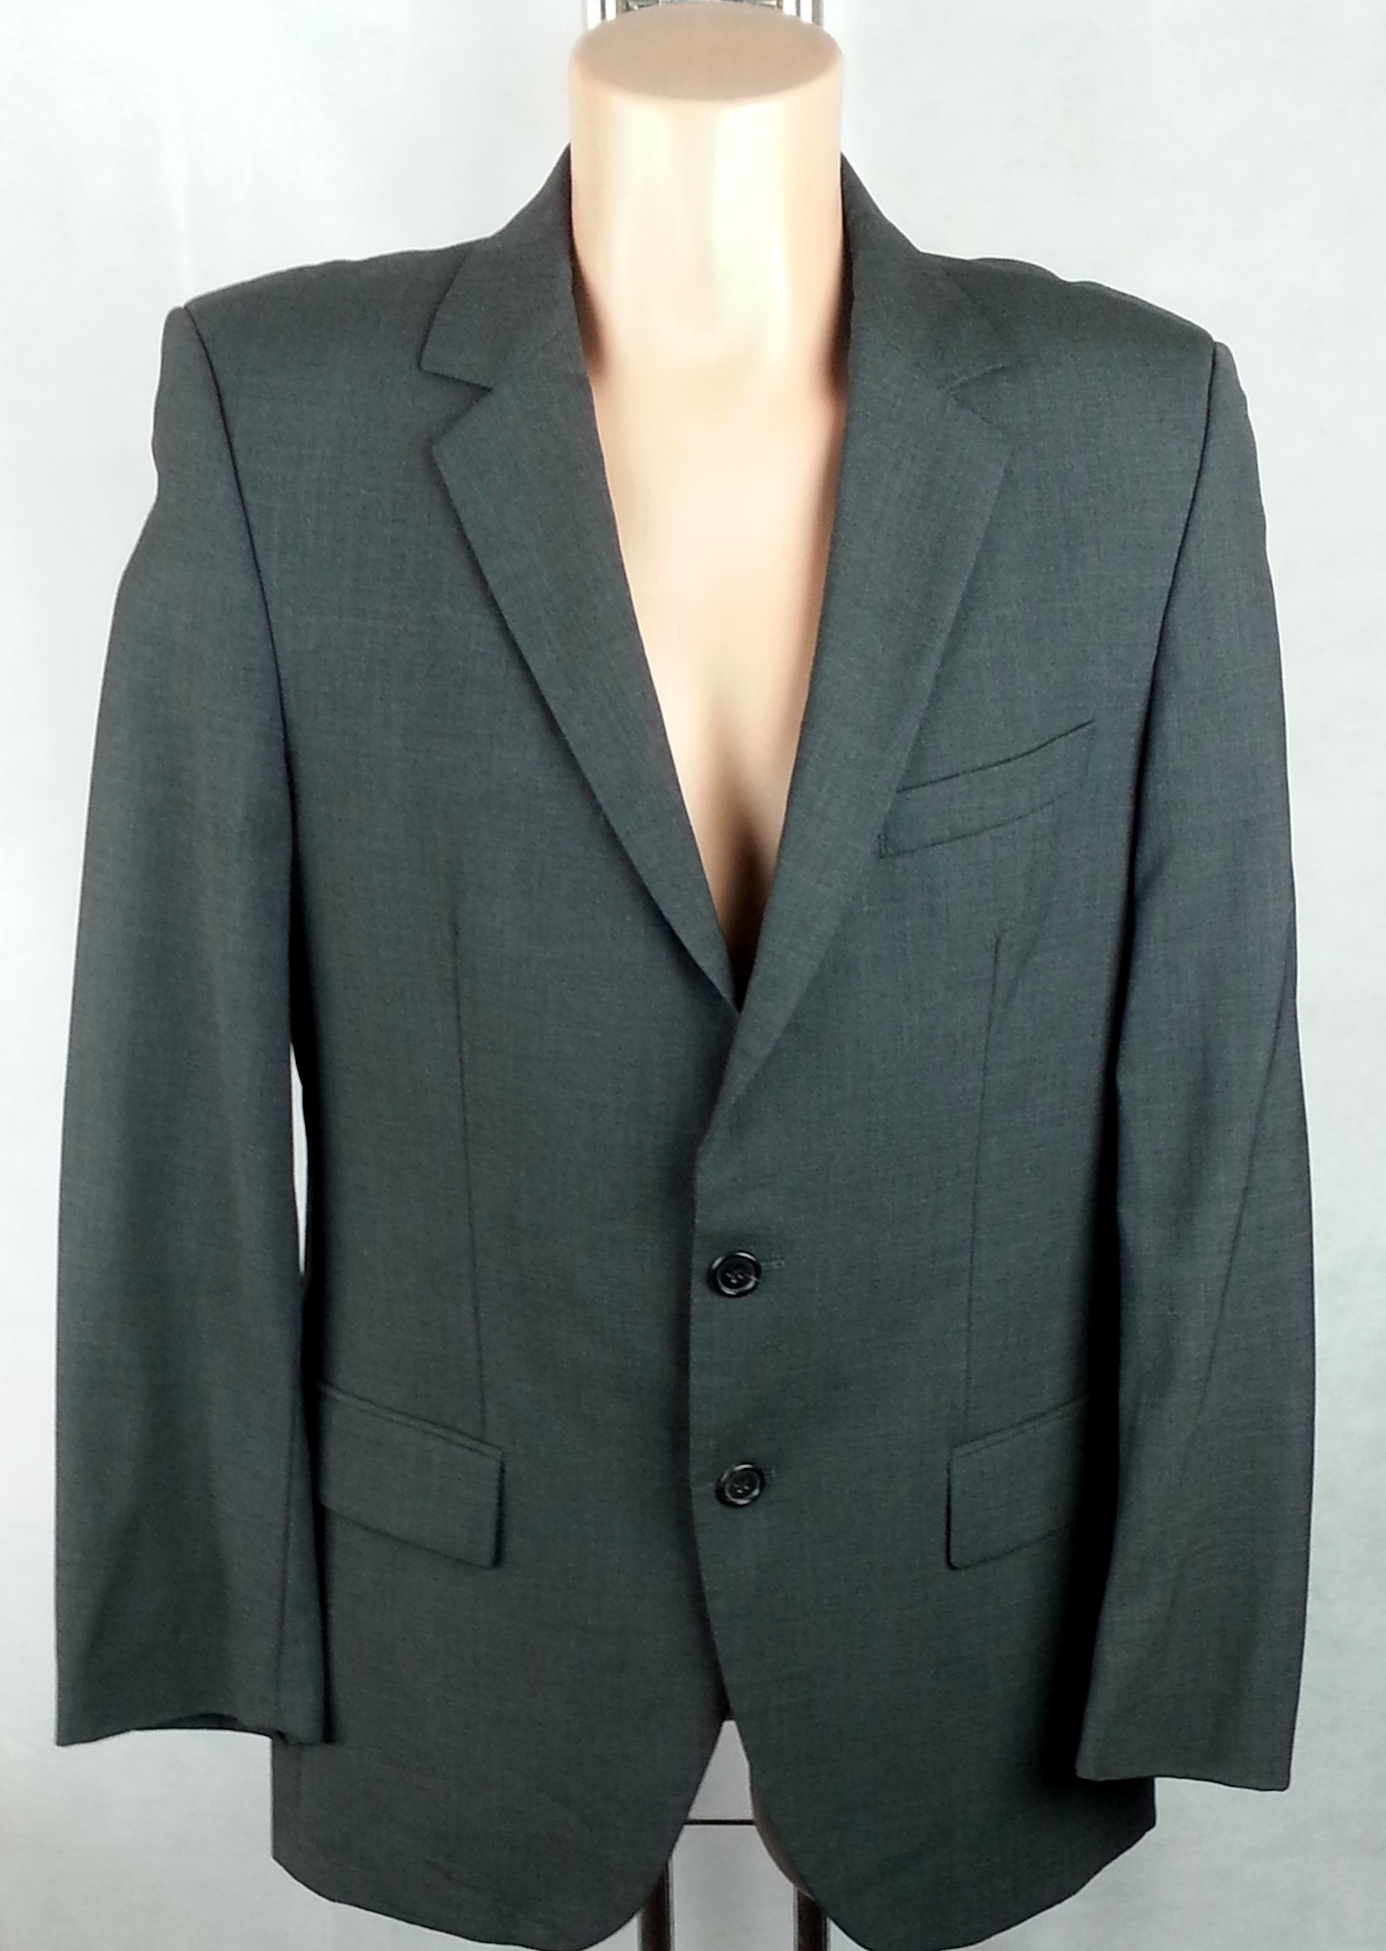 a261bfa95 Hugo Boss Hugo Boss Aamon/hago Men's Blazer | Grailed